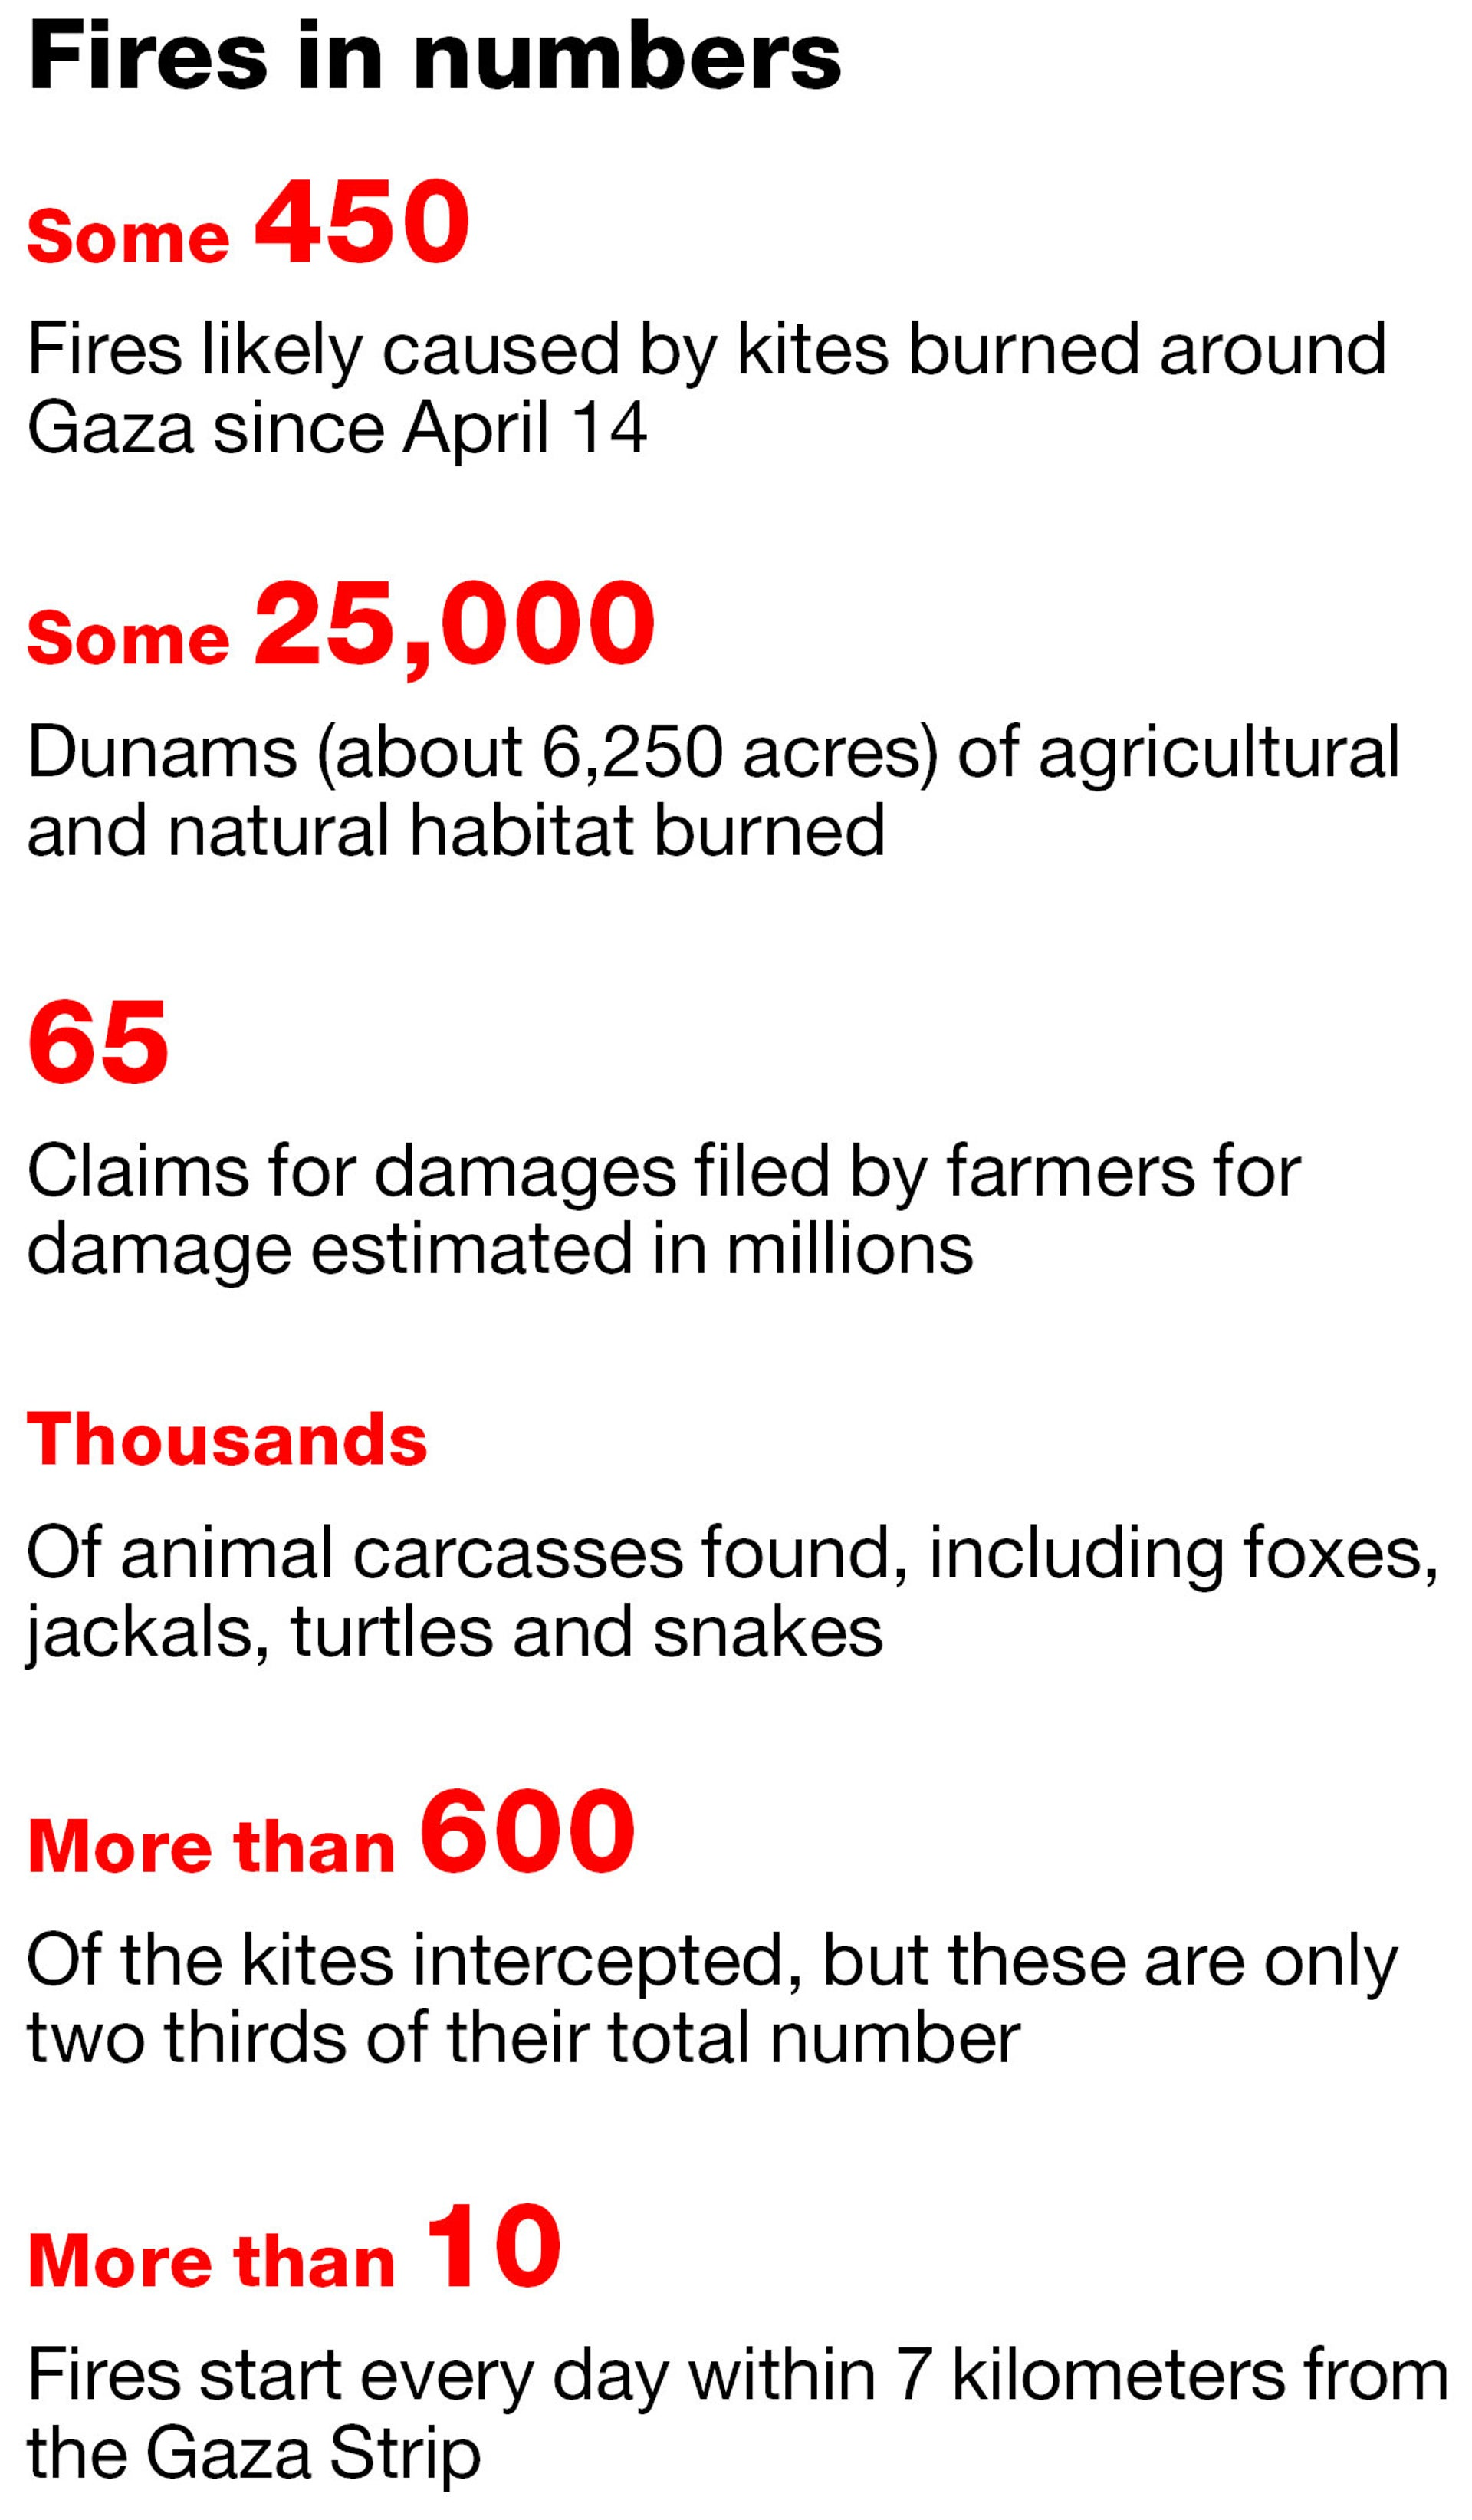 Fires in numbers